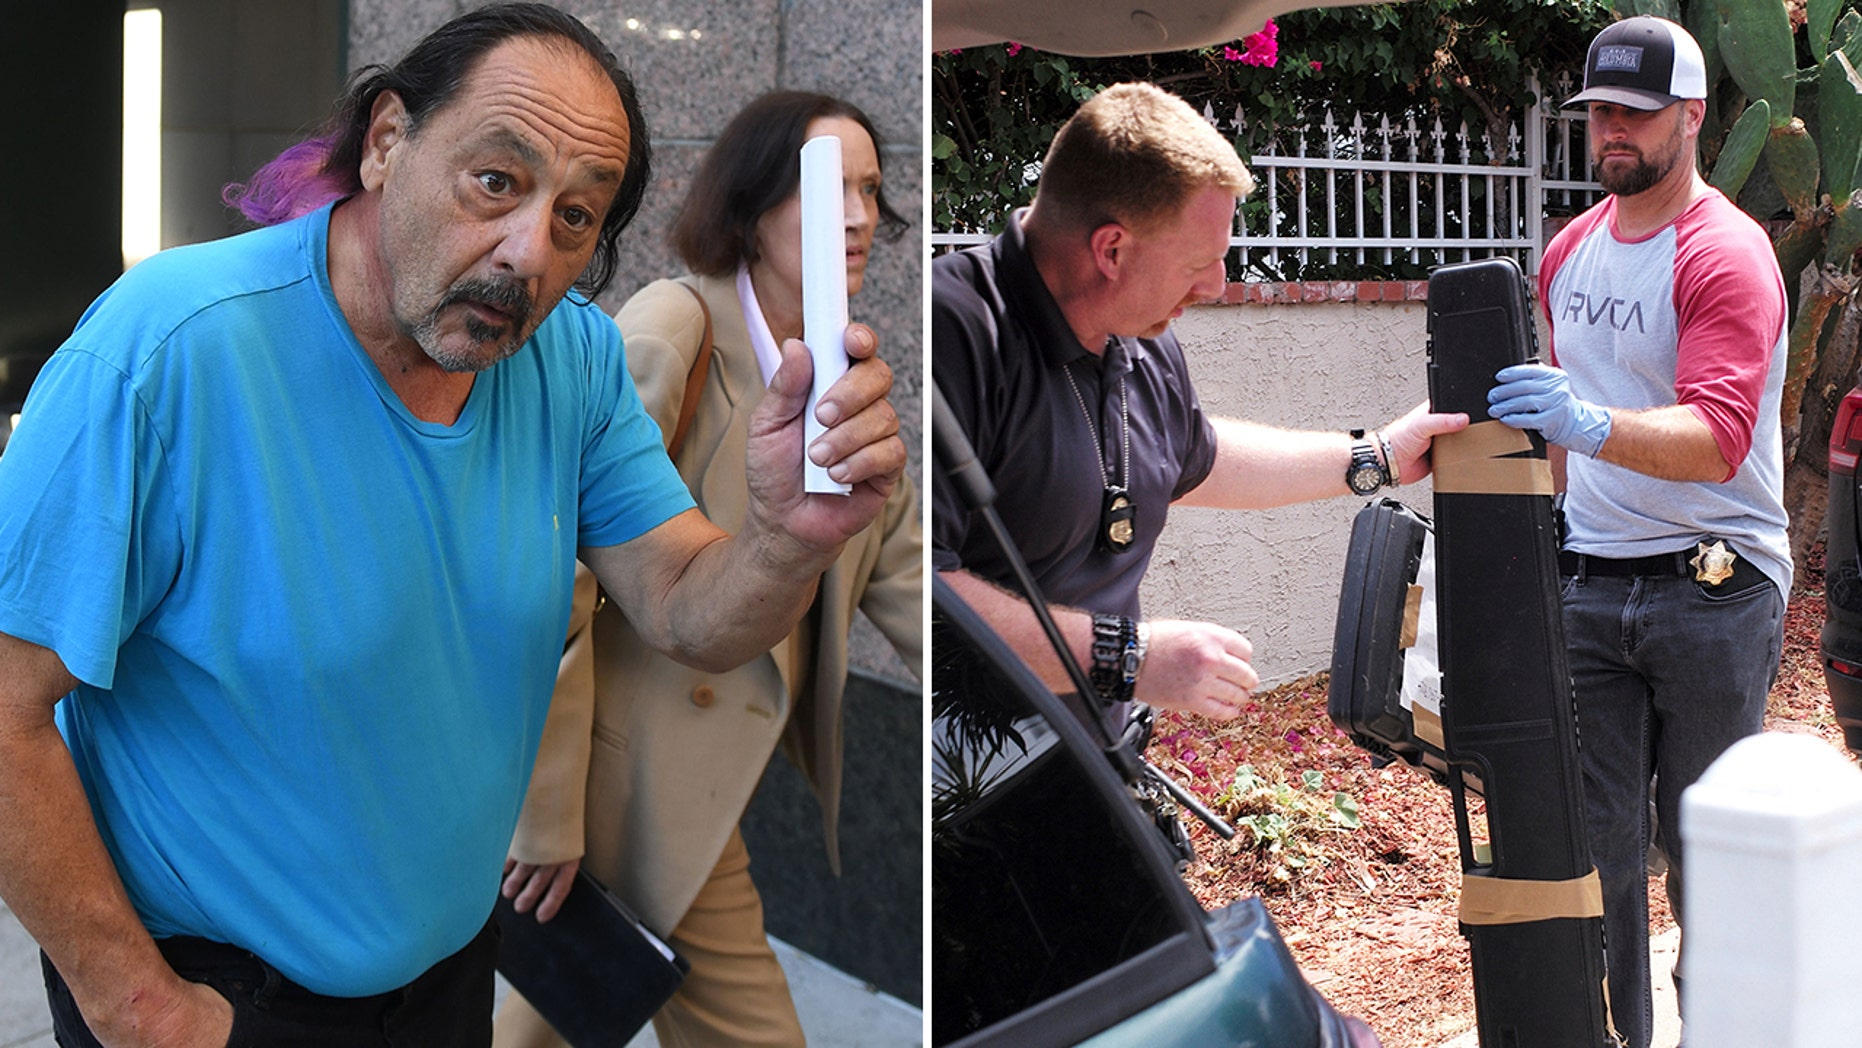 Authorities in California said they seized a small arsenal of guns and ammunition from the home of Robert Chain, 68, (pictured left) who was charged with making death threats against journalists of The Boston Globe.